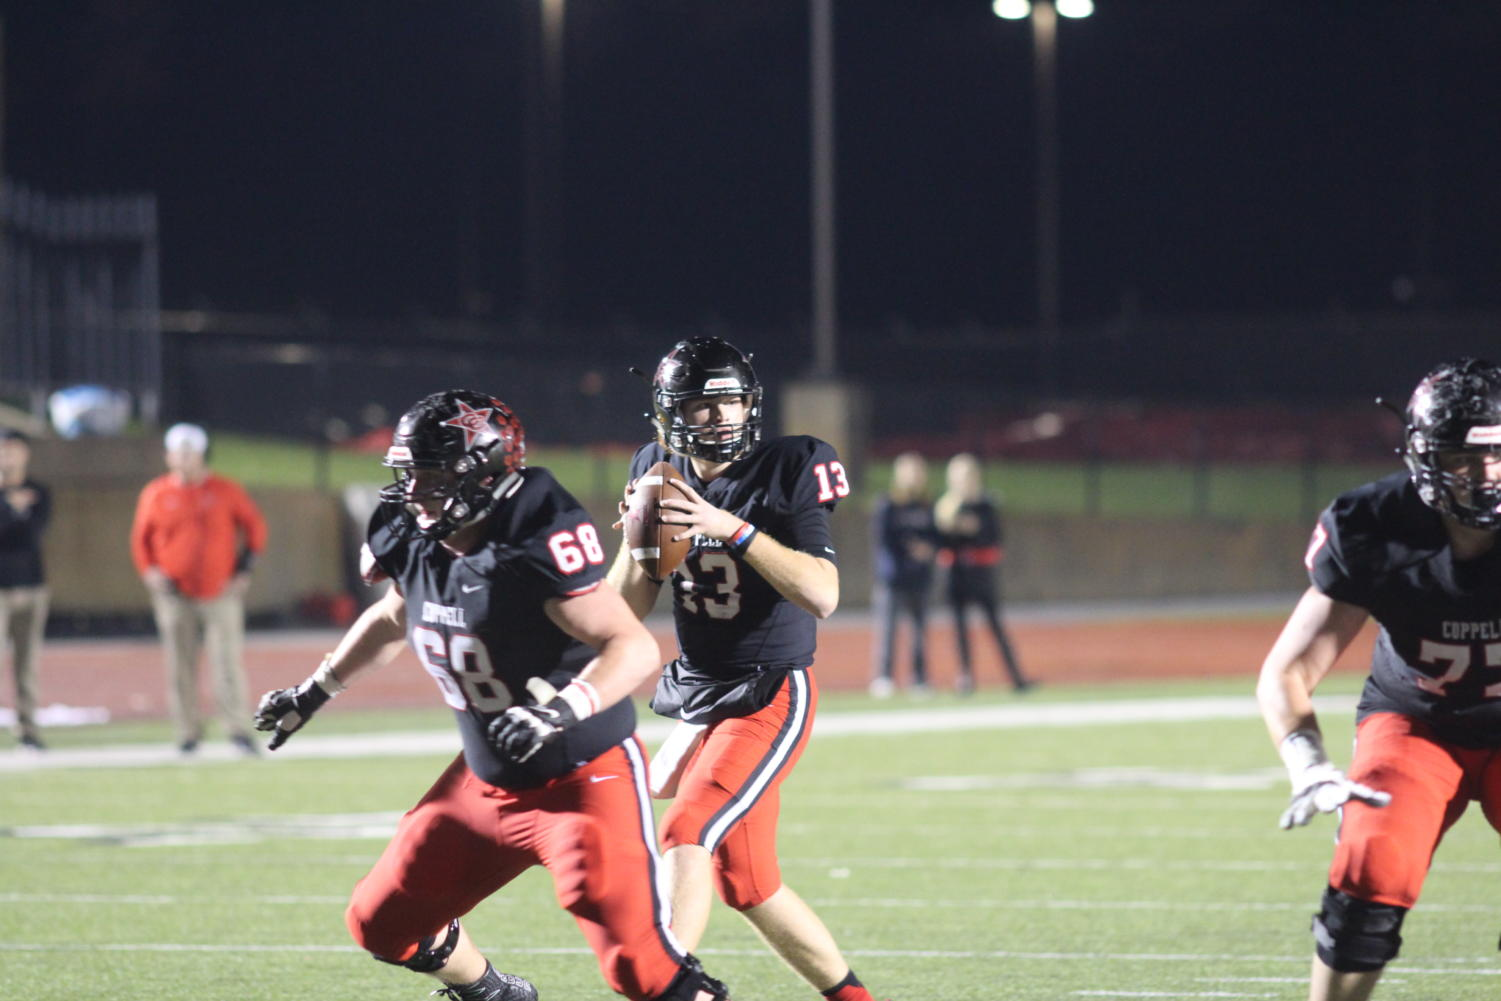 Coppell junior quarterback Drew Cerniglia sets up to throw a pass against Marcus at Buddy Echols Field on Oct. 19. The Cowboys will play Irving tonight at 7 p.m. at Joy & Ralph stadium in Irving.